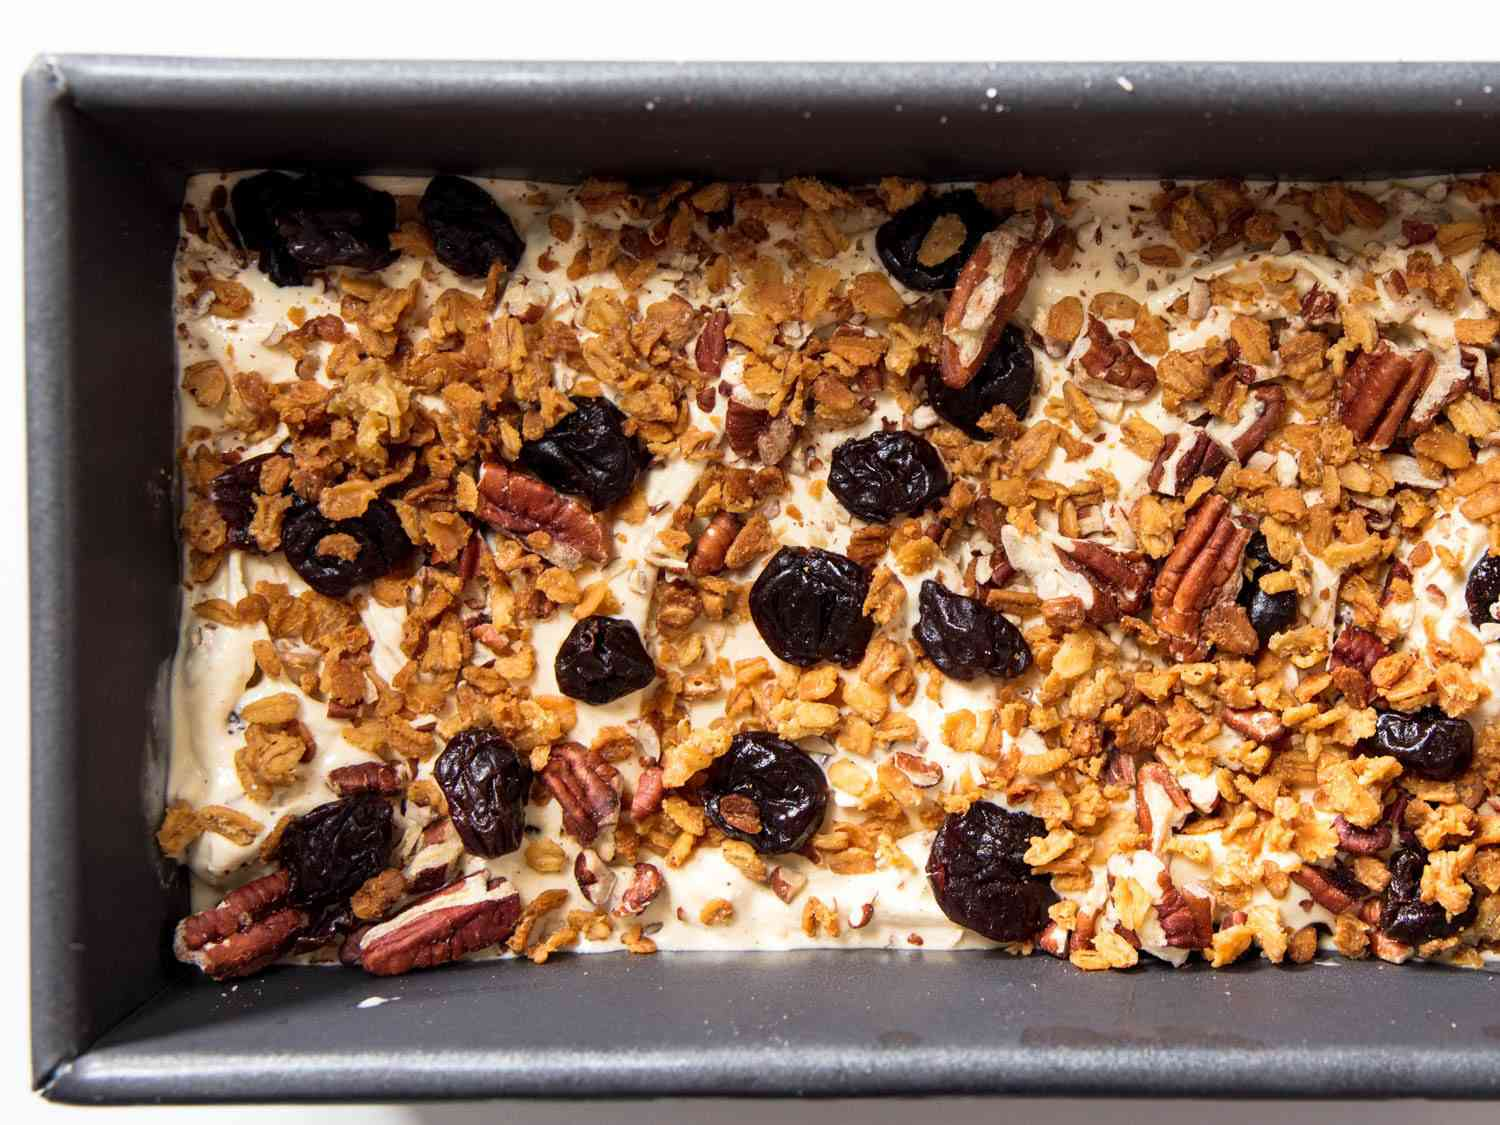 Loaf pan filled with oatmeal cookie ice cream, covered in dried fruit, nuts, and oat clusters